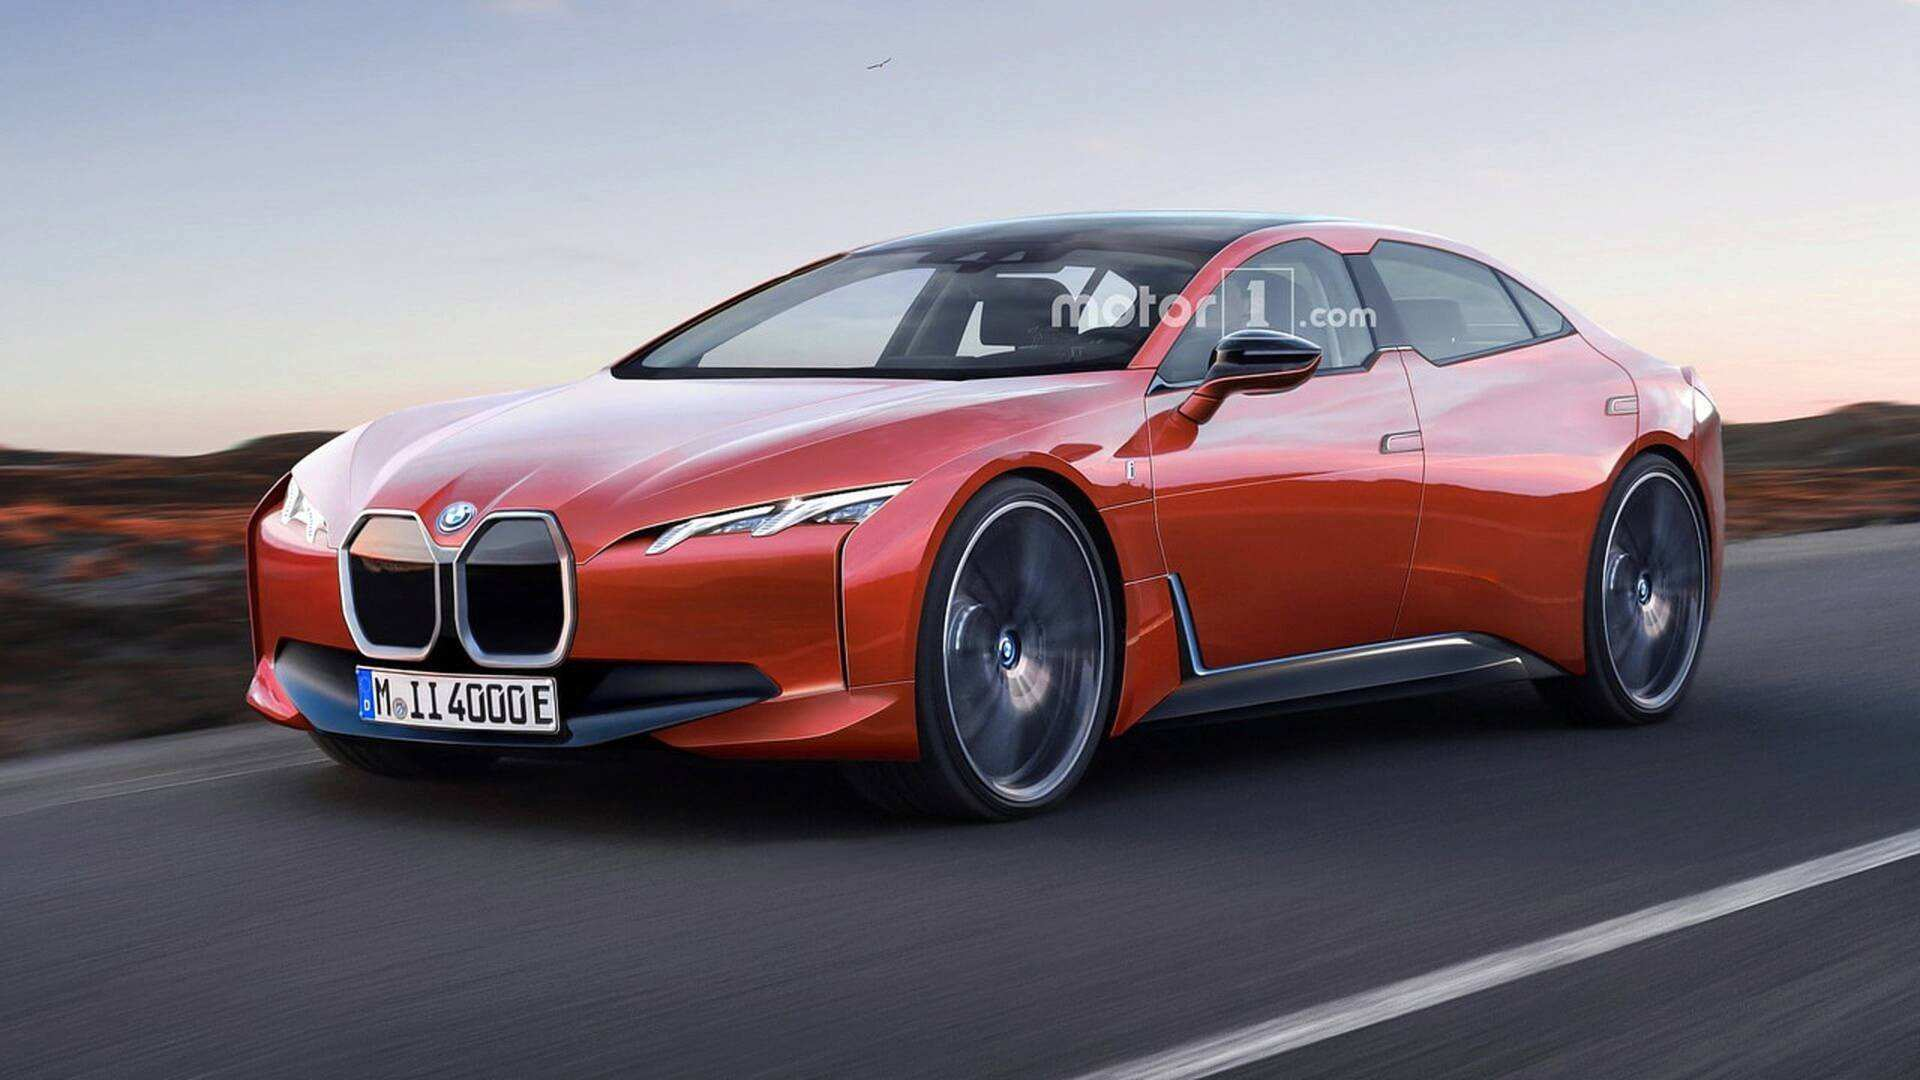 33 Concept of 2020 BMW New Concepts Ratings with 2020 BMW New Concepts